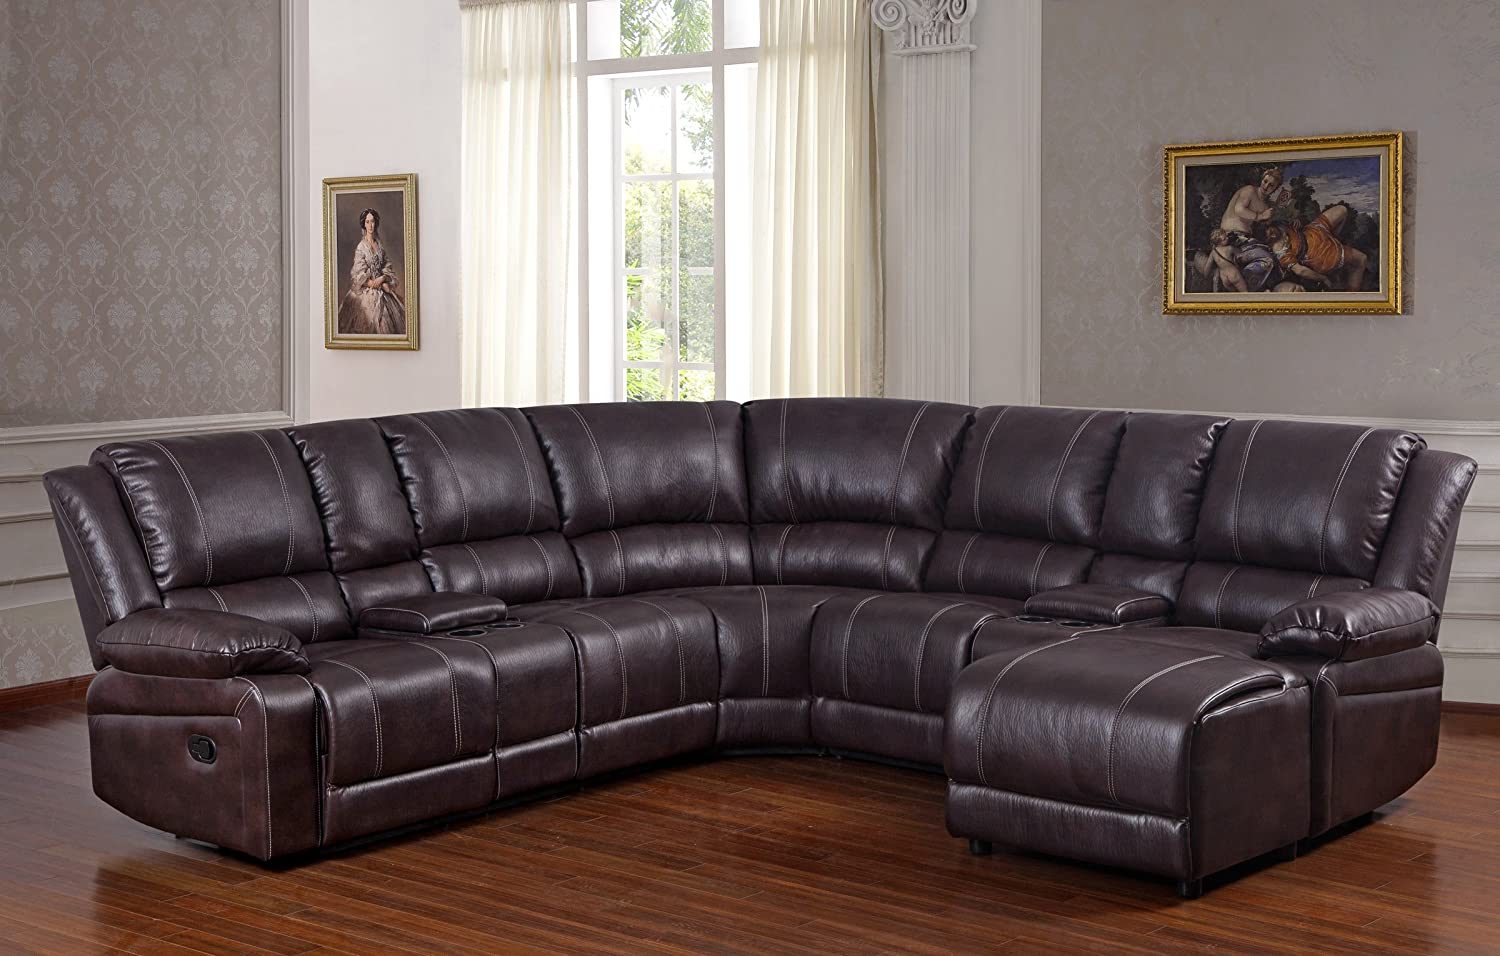 Amazon.com: UFE Robinson Sectional Sofa With Recliner Chaise Console W/Cup  Holders Bubble Leather Brown: Kitchen U0026 Dining